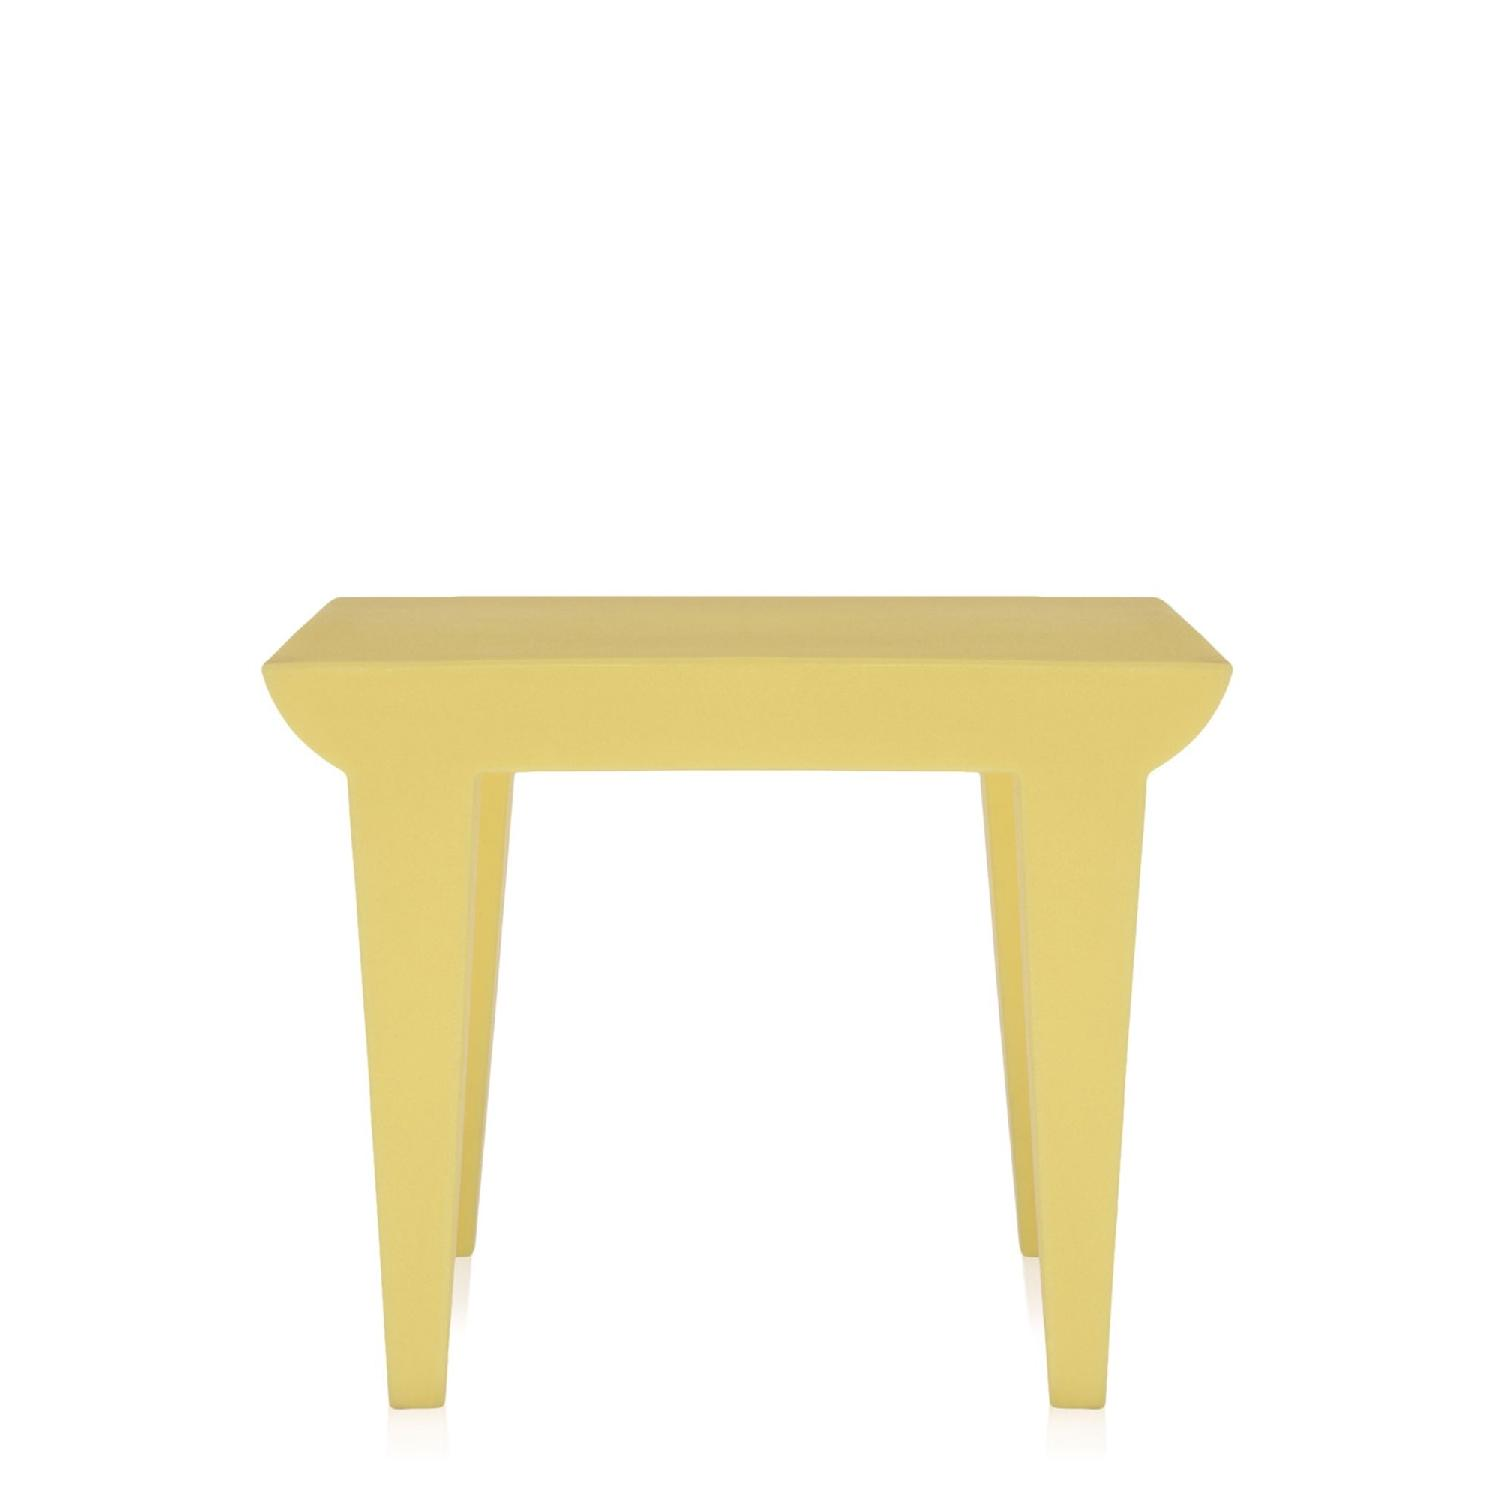 Kartell Philippe Stark Bubble Club Side Tables in Yellow - image-6